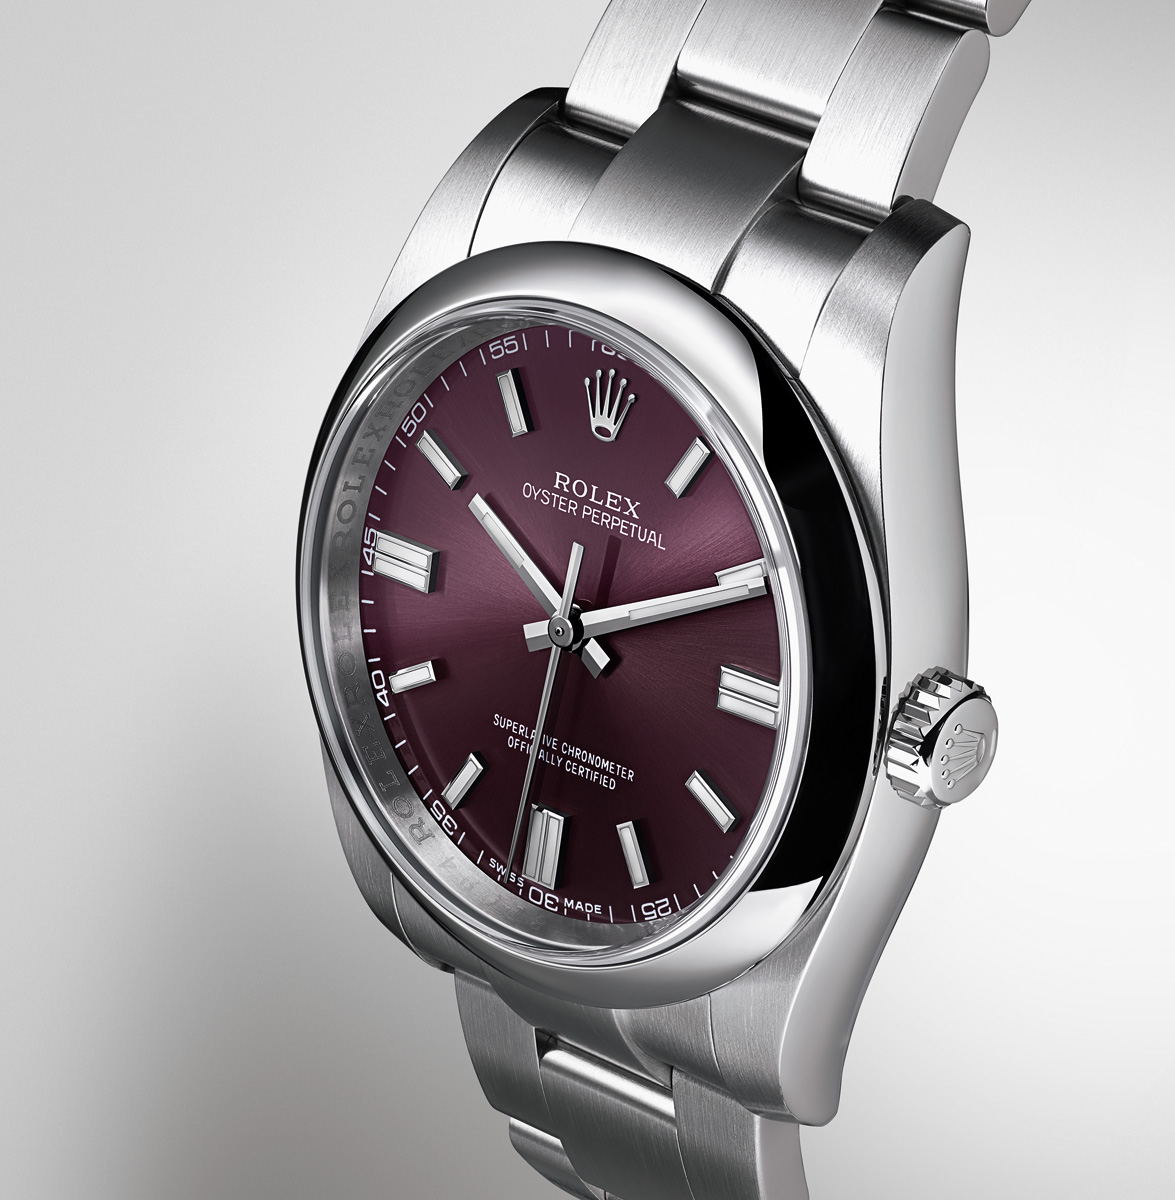 Rolex-Oyster-Perpetual-116000-Baselworld-2014-282291